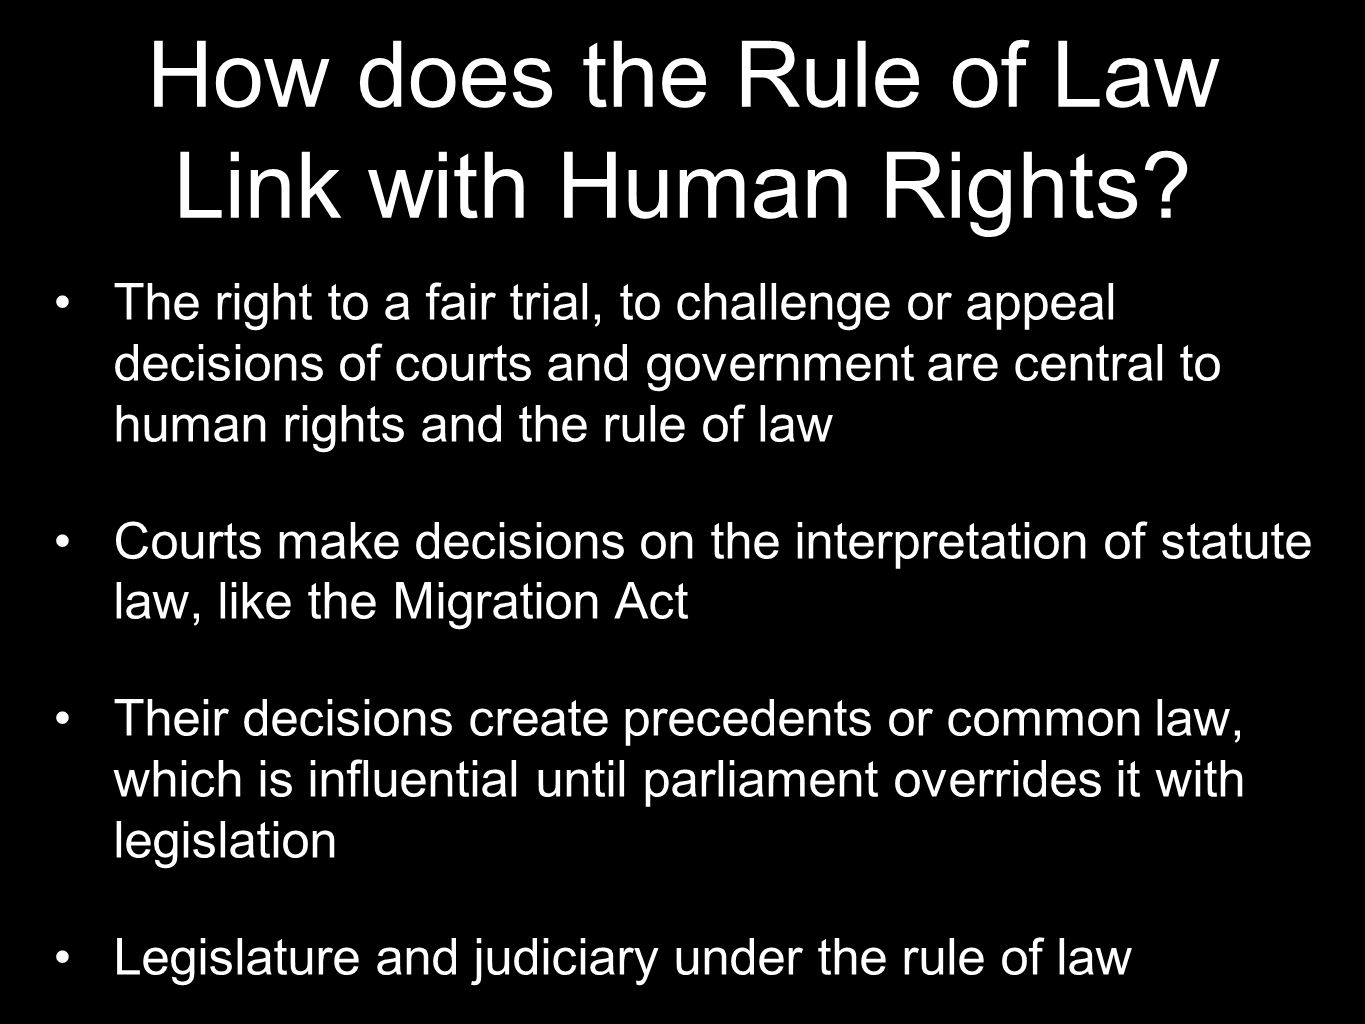 How does the Rule of Law Link with Human Rights